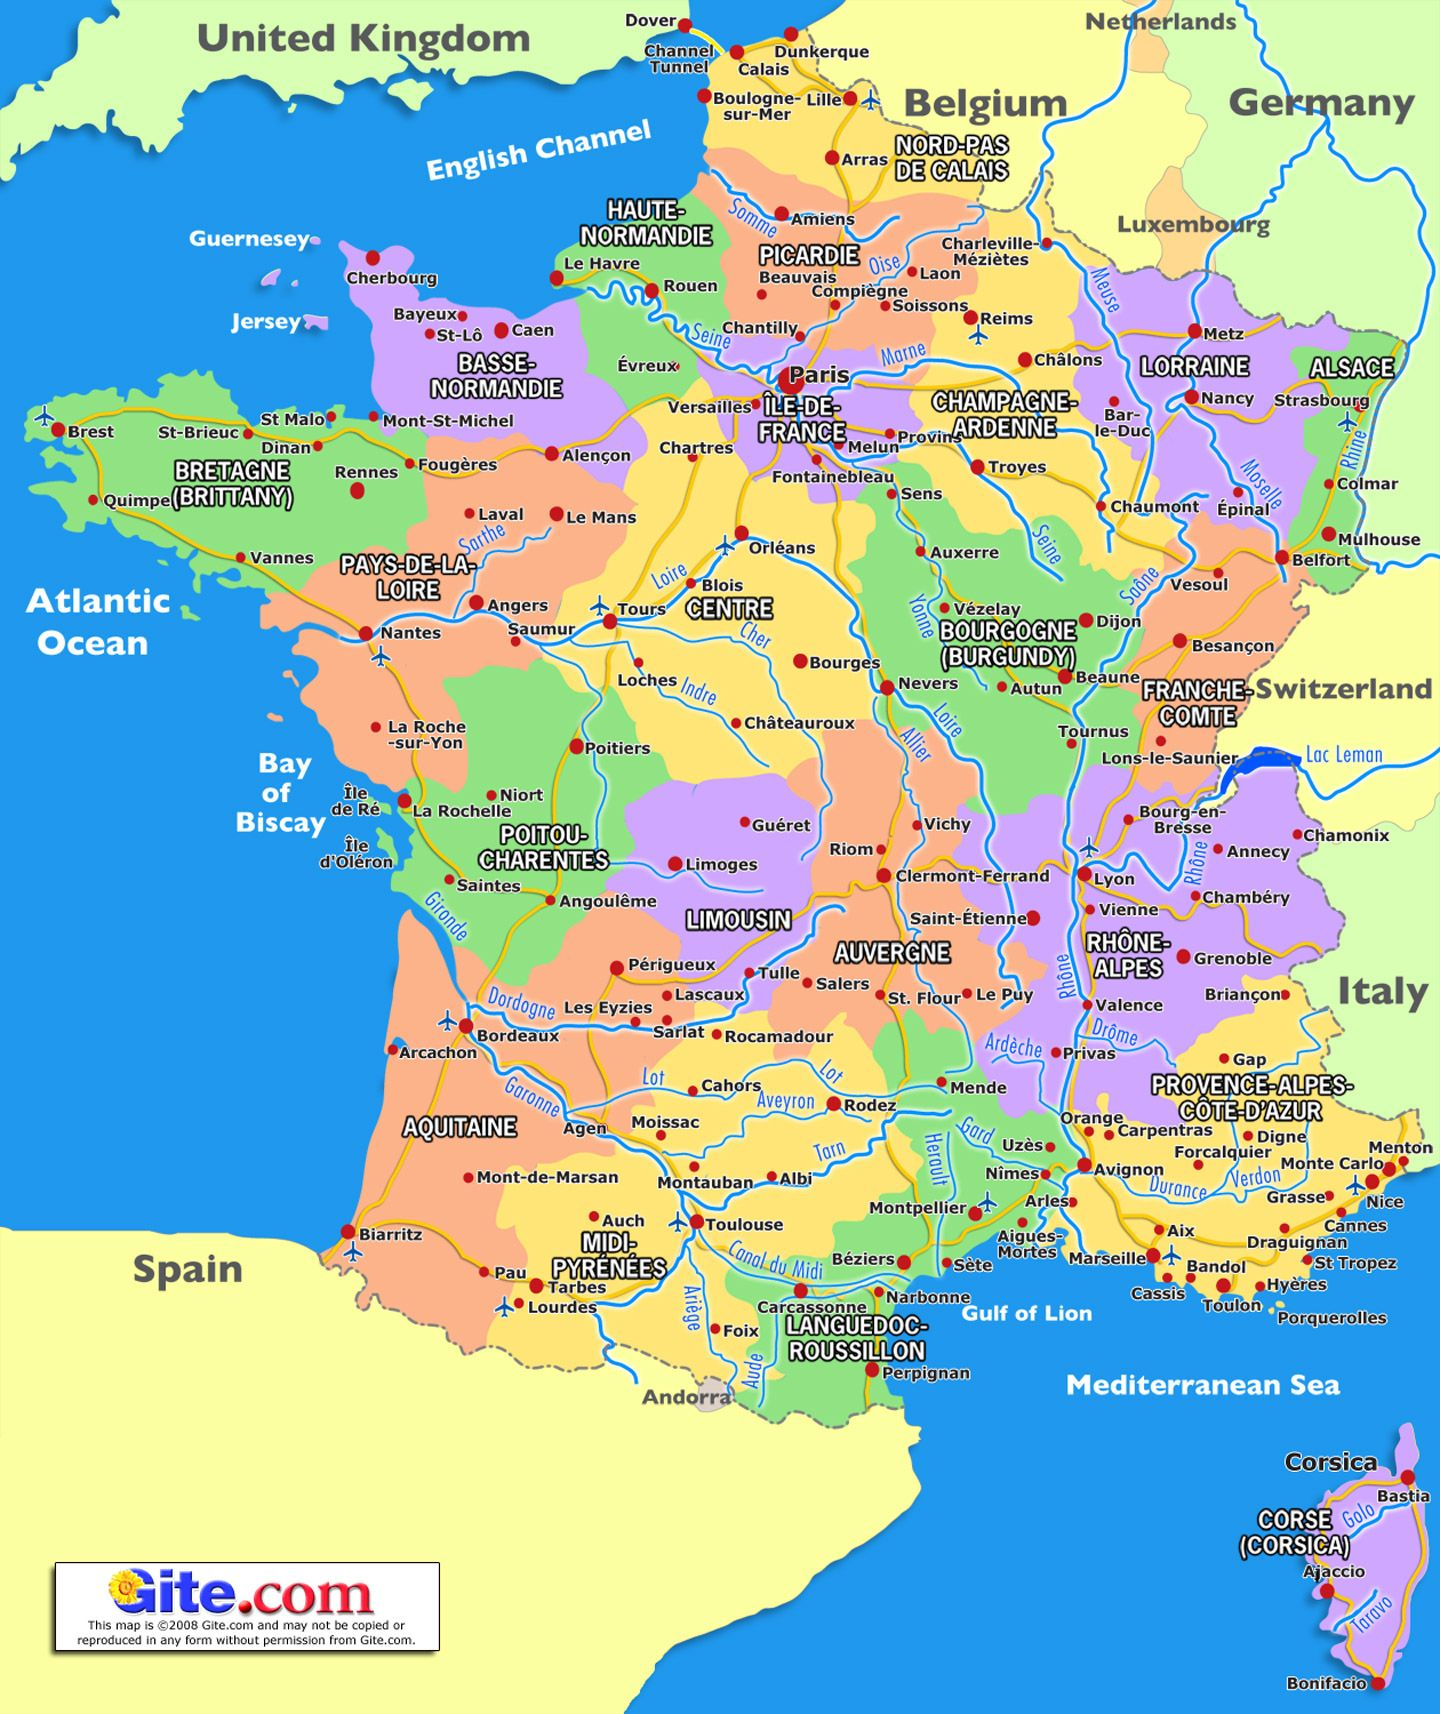 Dorogone region of France | map-of-france-regions.jpg | France ...